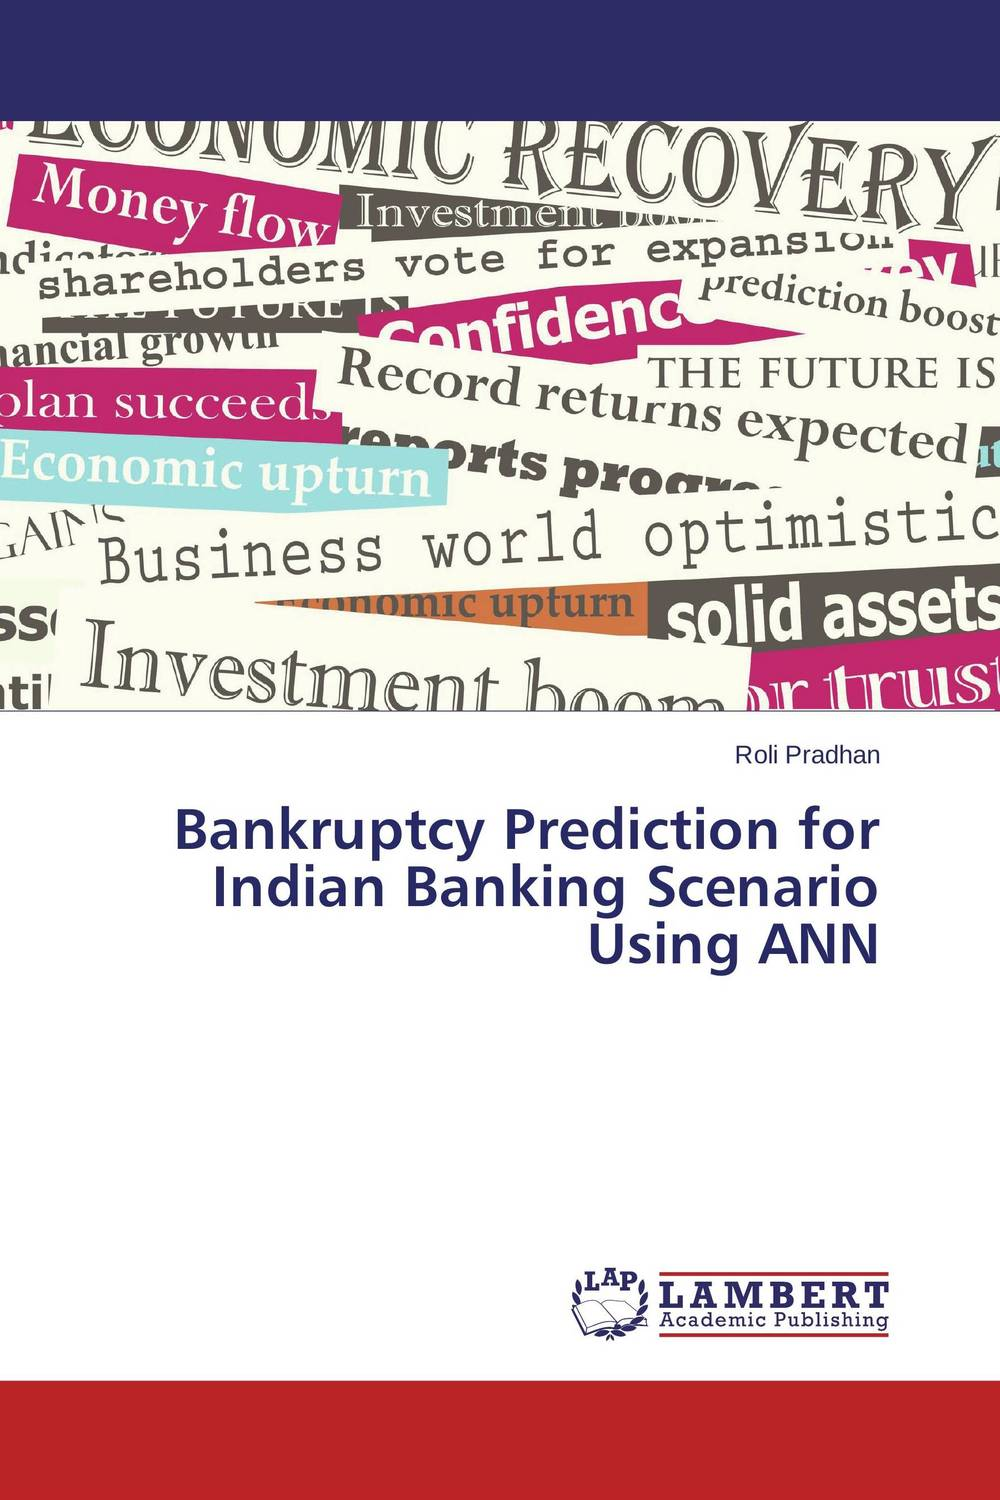 Bankruptcy Prediction for Indian Banking Scenario Using ANN credit and risk analysis by banks